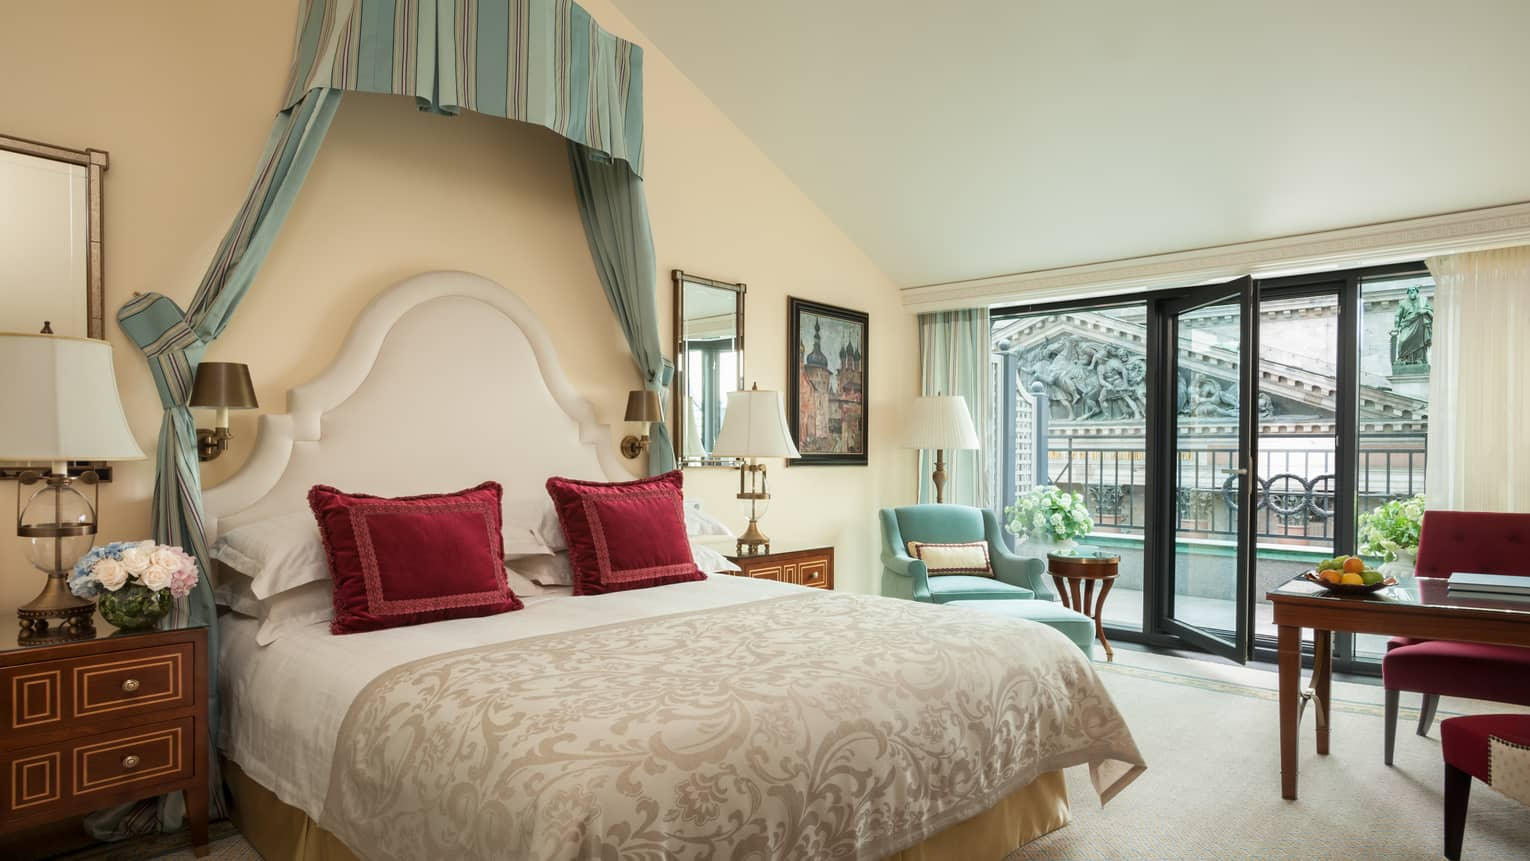 Terrace Room bed with red accent pillows under striped green and blue canopy, large window